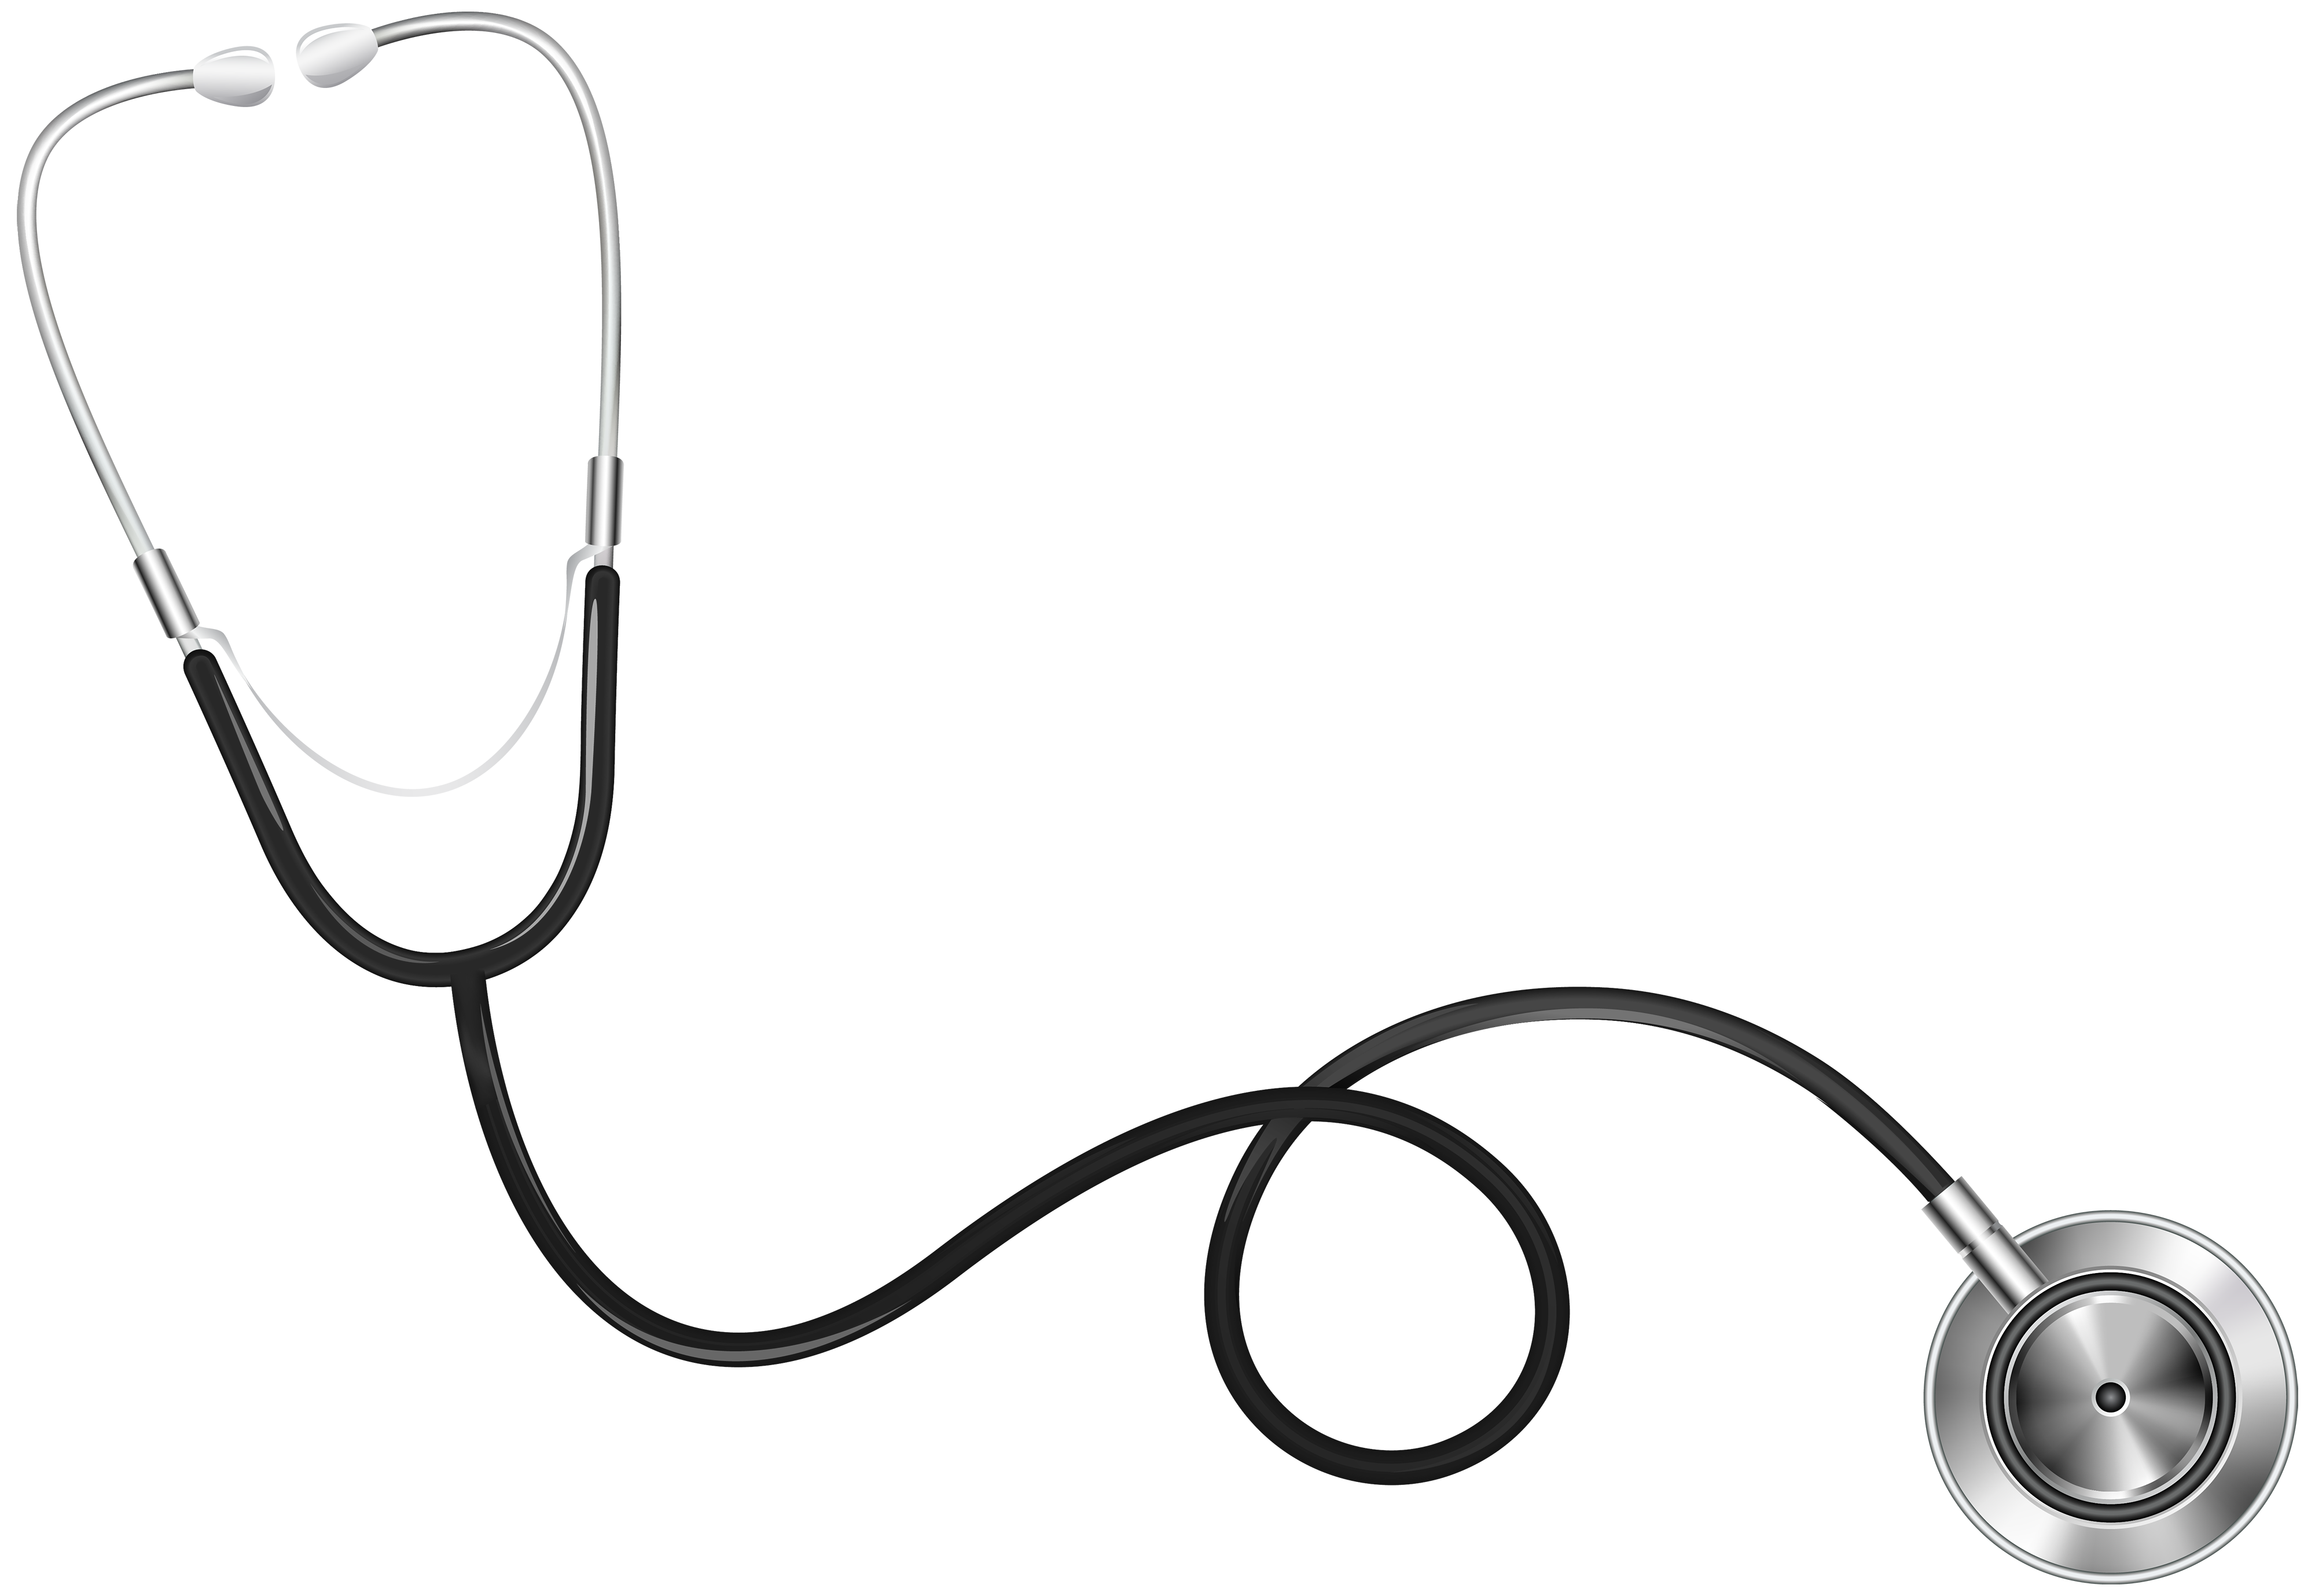 freeuse download Zeus clipart black and white. Stethoscope png fototo me